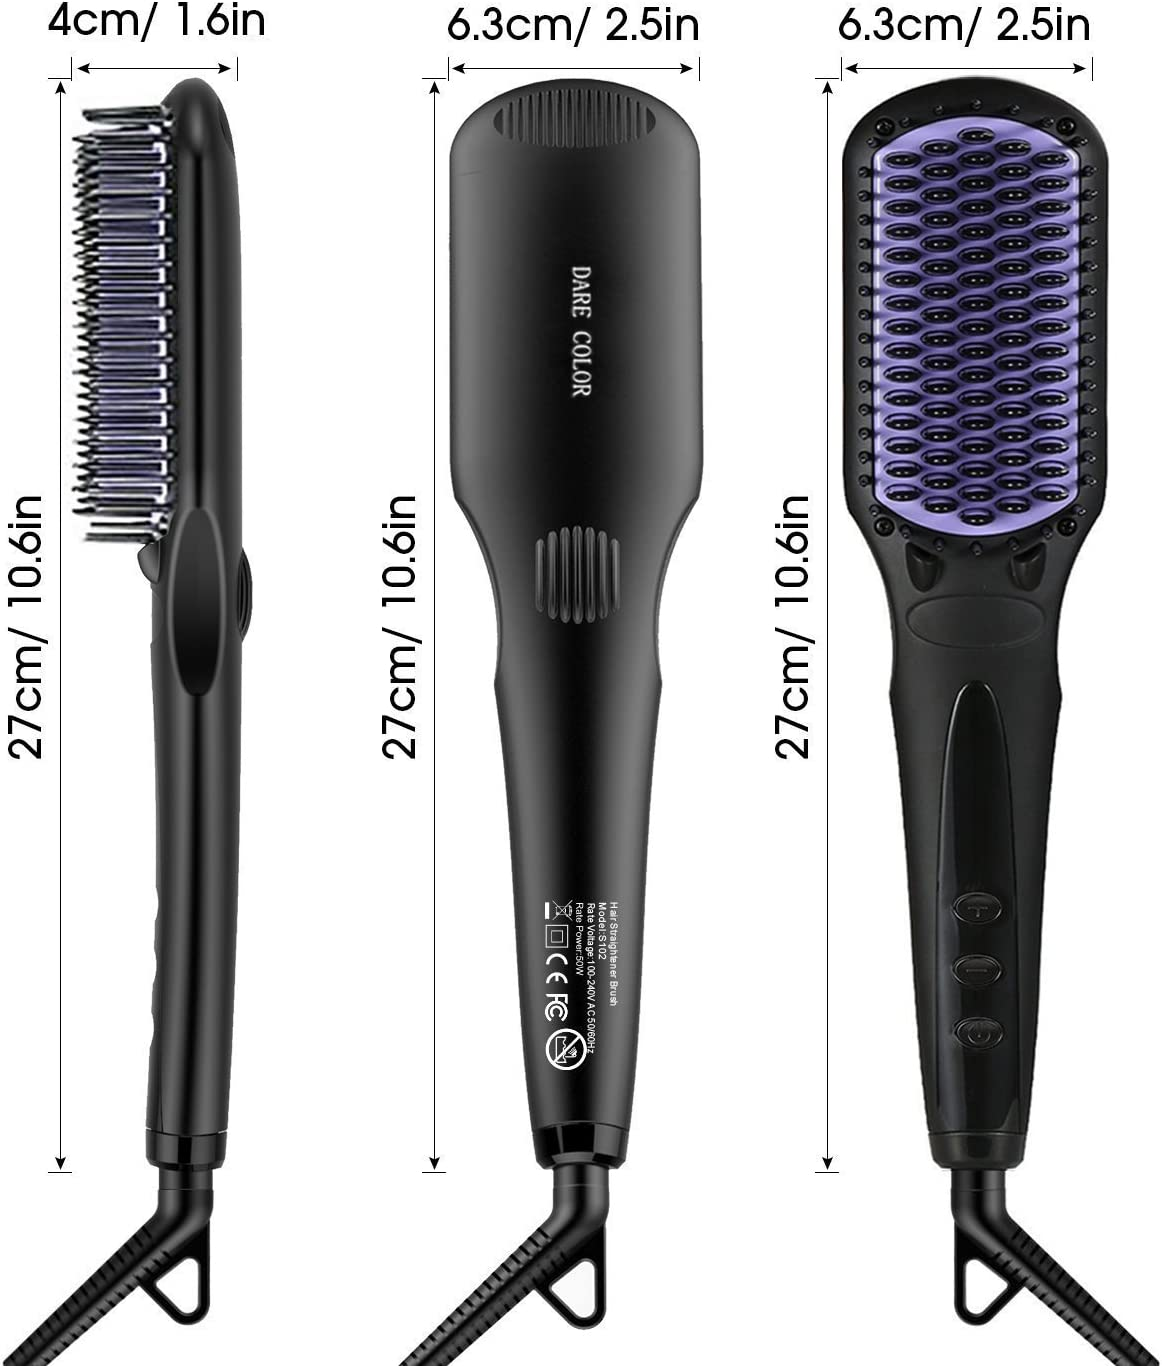 Hair Straightening Brush, Dare Color Ionic Heated Hair Straightener Ceramic Heated Hair Comb MCH Fast Heating Detangling Brush for Frizz and Free Hair